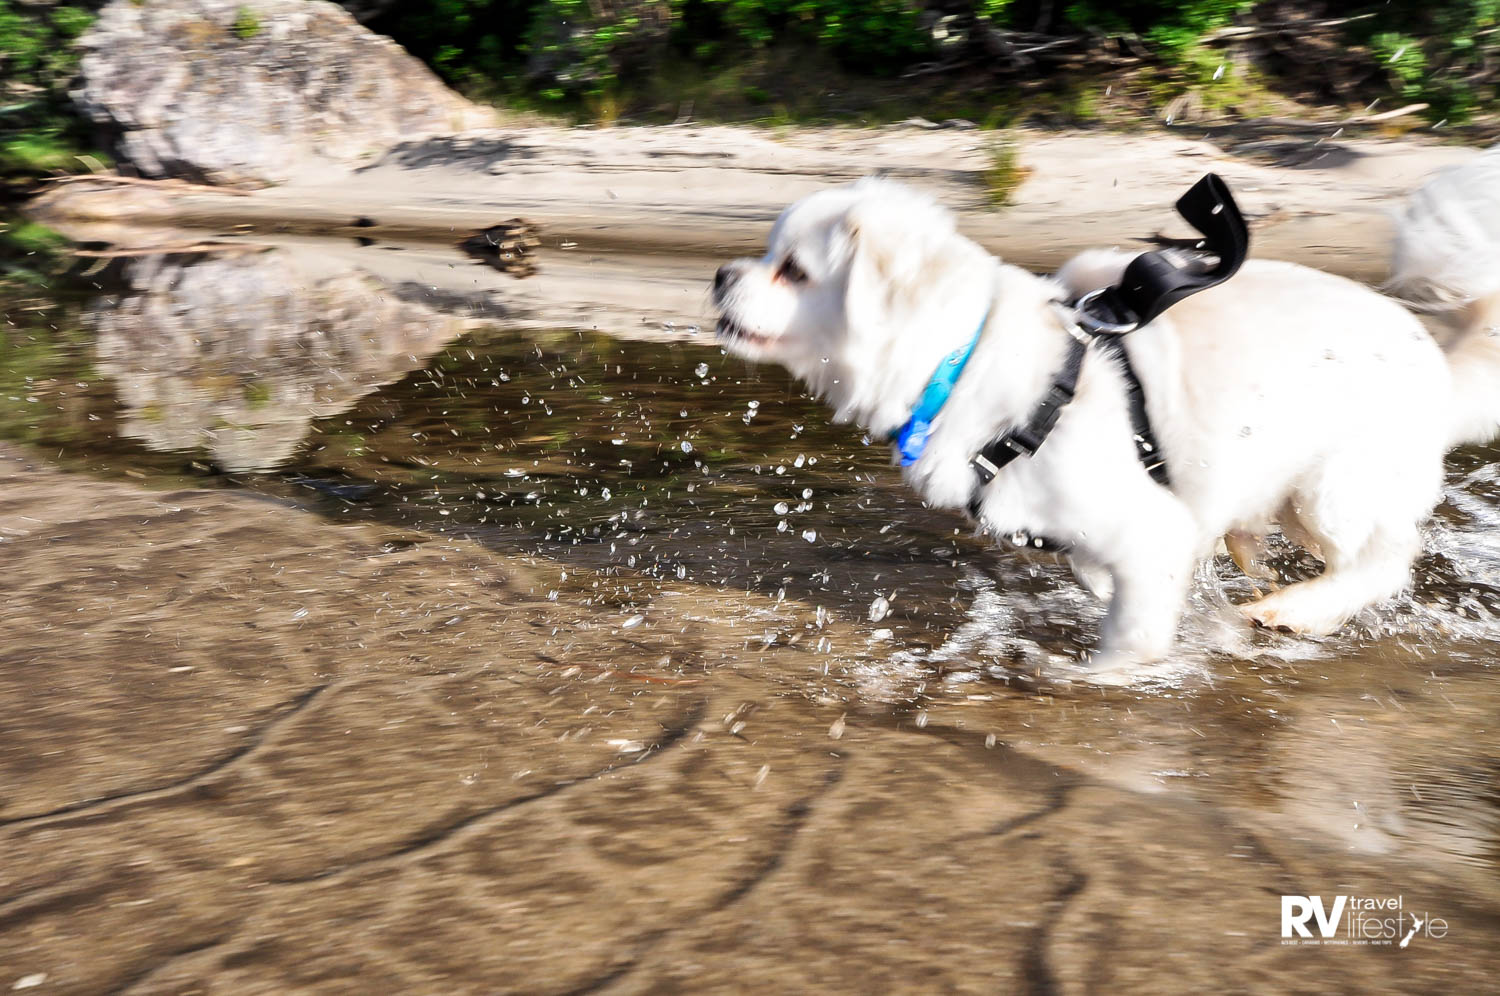 I had a great time running around at the beach